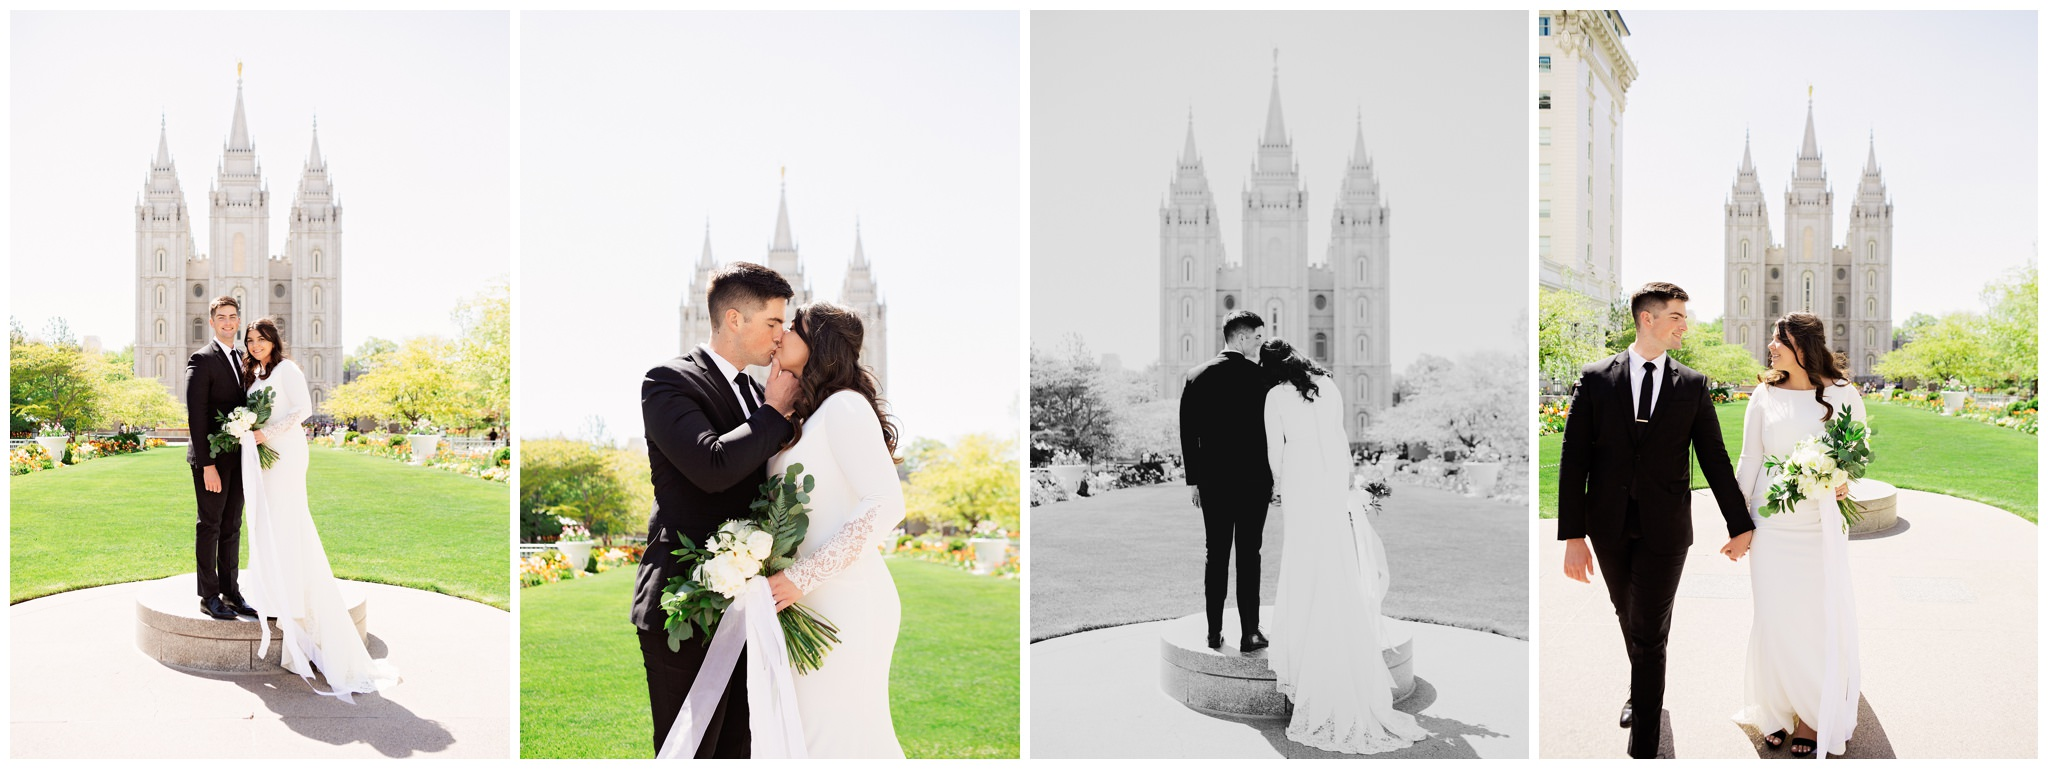 Bride and Groom in front of the Salt Lake City Temple Lds couple